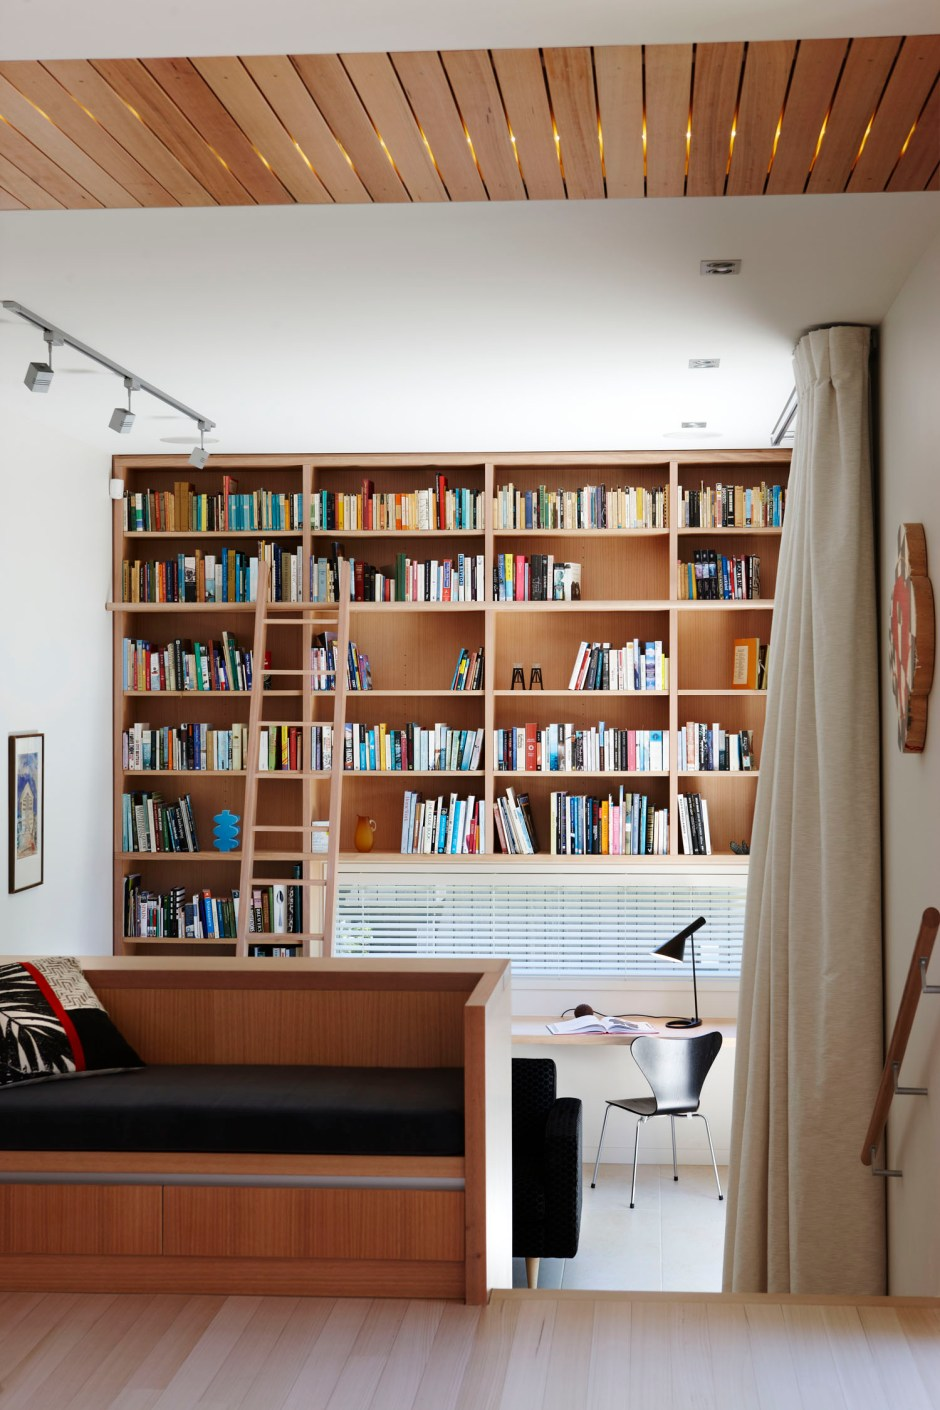 Dave Strachan townhouse built in library shelving maximises space